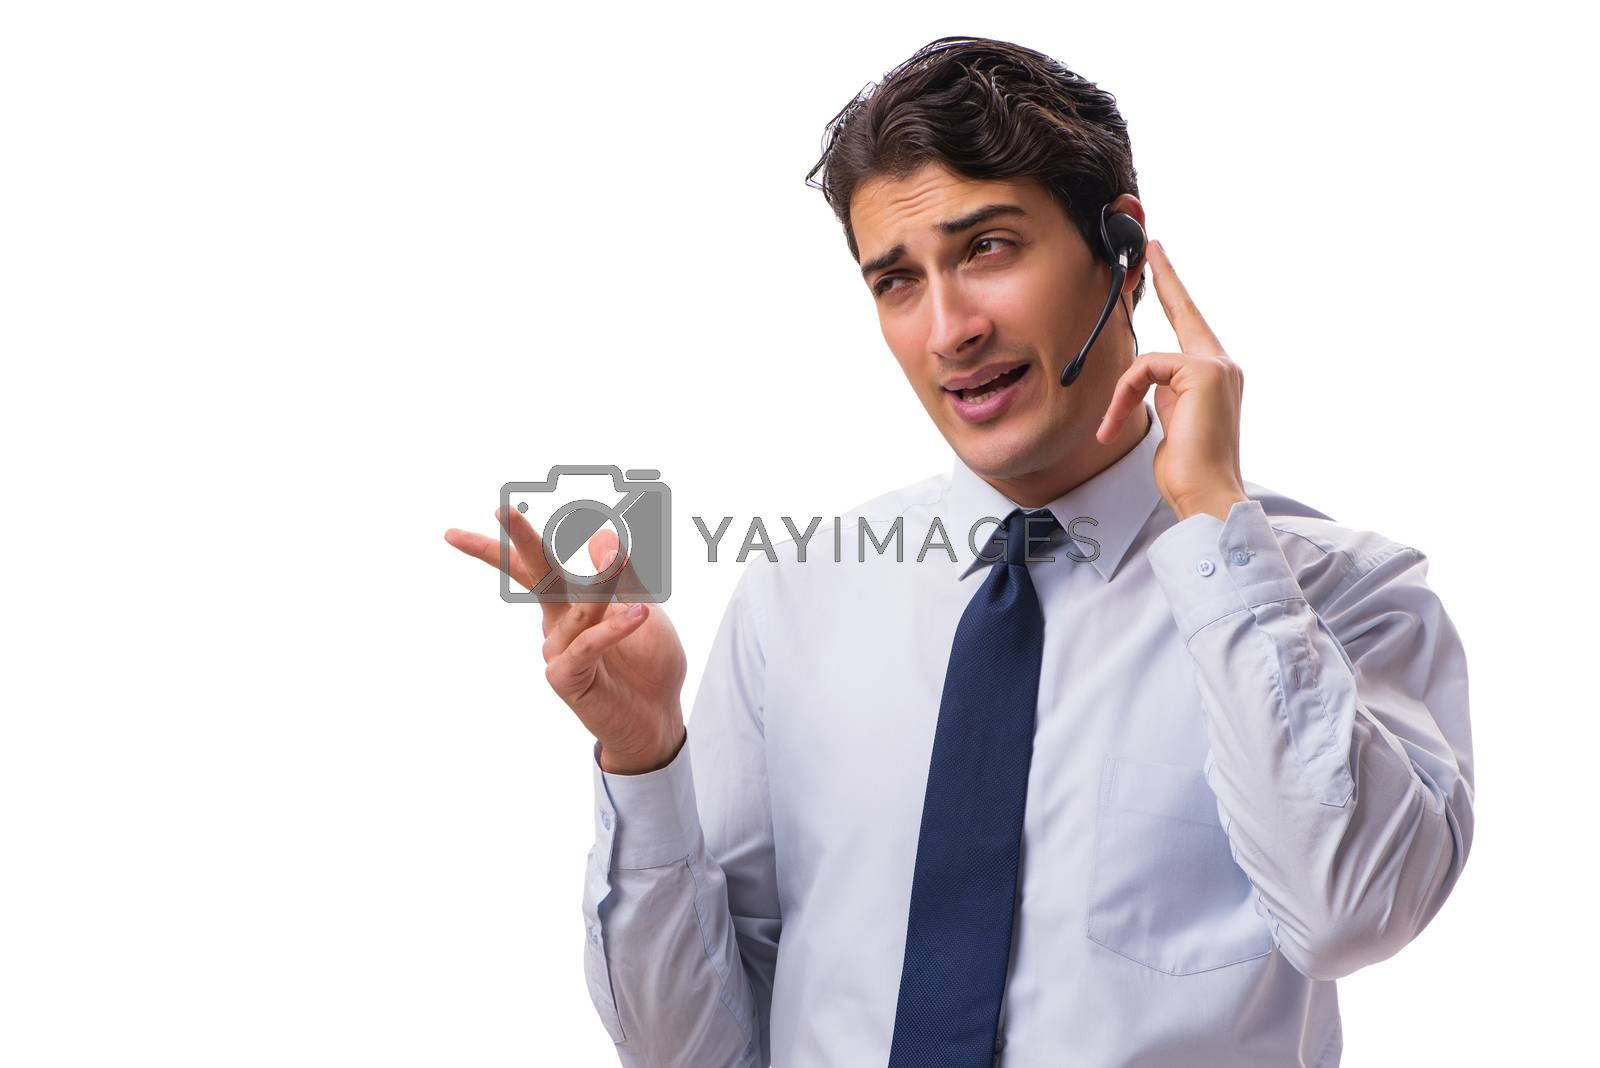 Man with headset isolated on white background